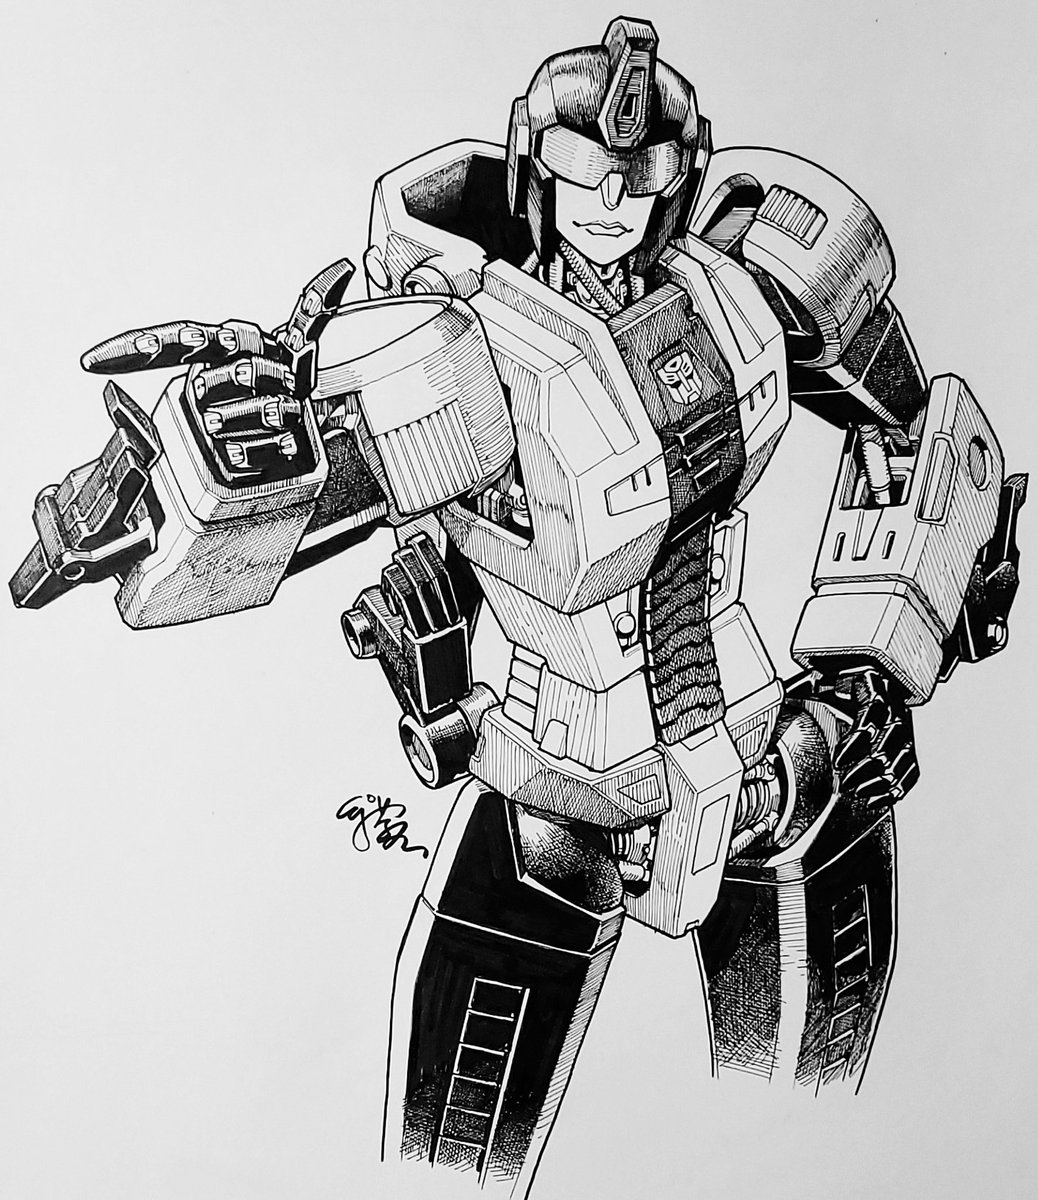 New commission: Dinobot Slash #transformer #transformers #autobots #dinobots #slash #robot #mecha pic.twitter.com/8Uk1J2MMvN